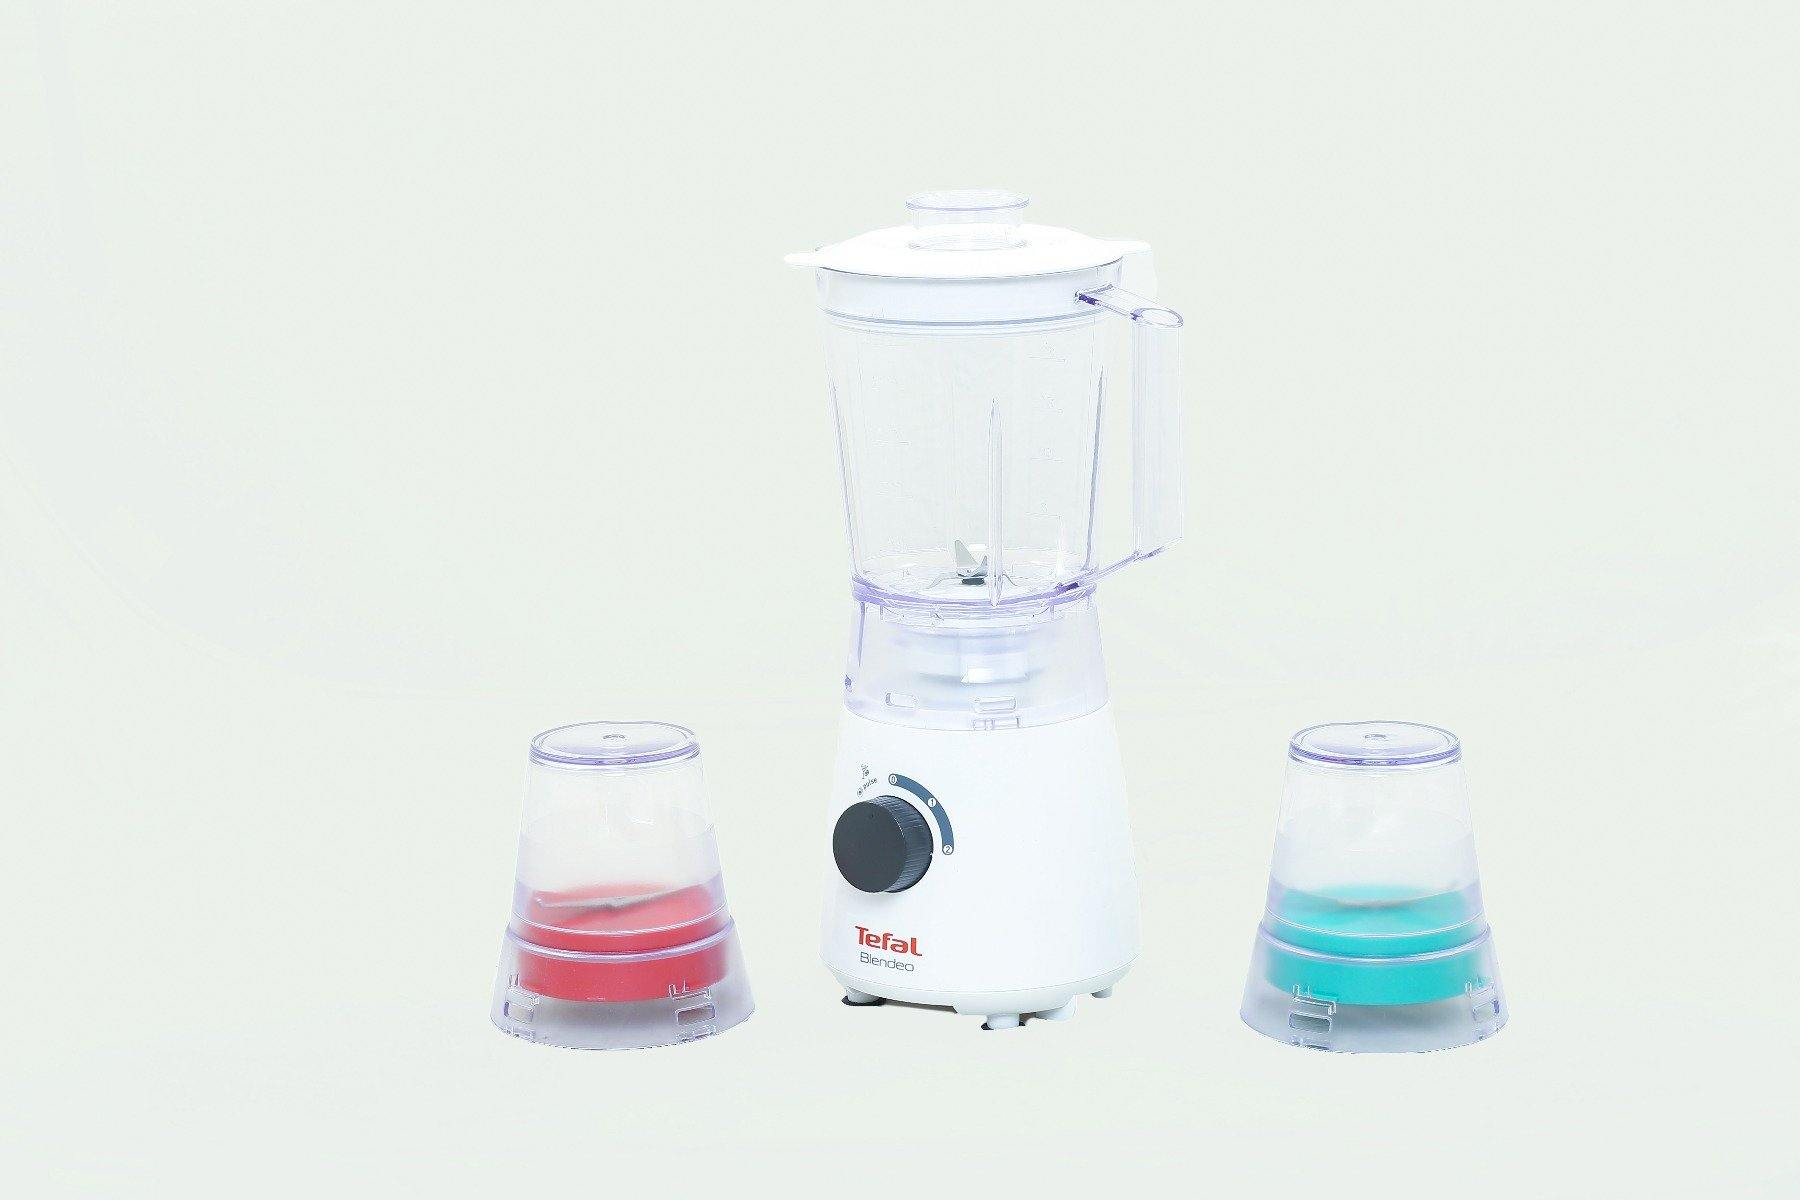 Tefal Blencleo White Blender 400W